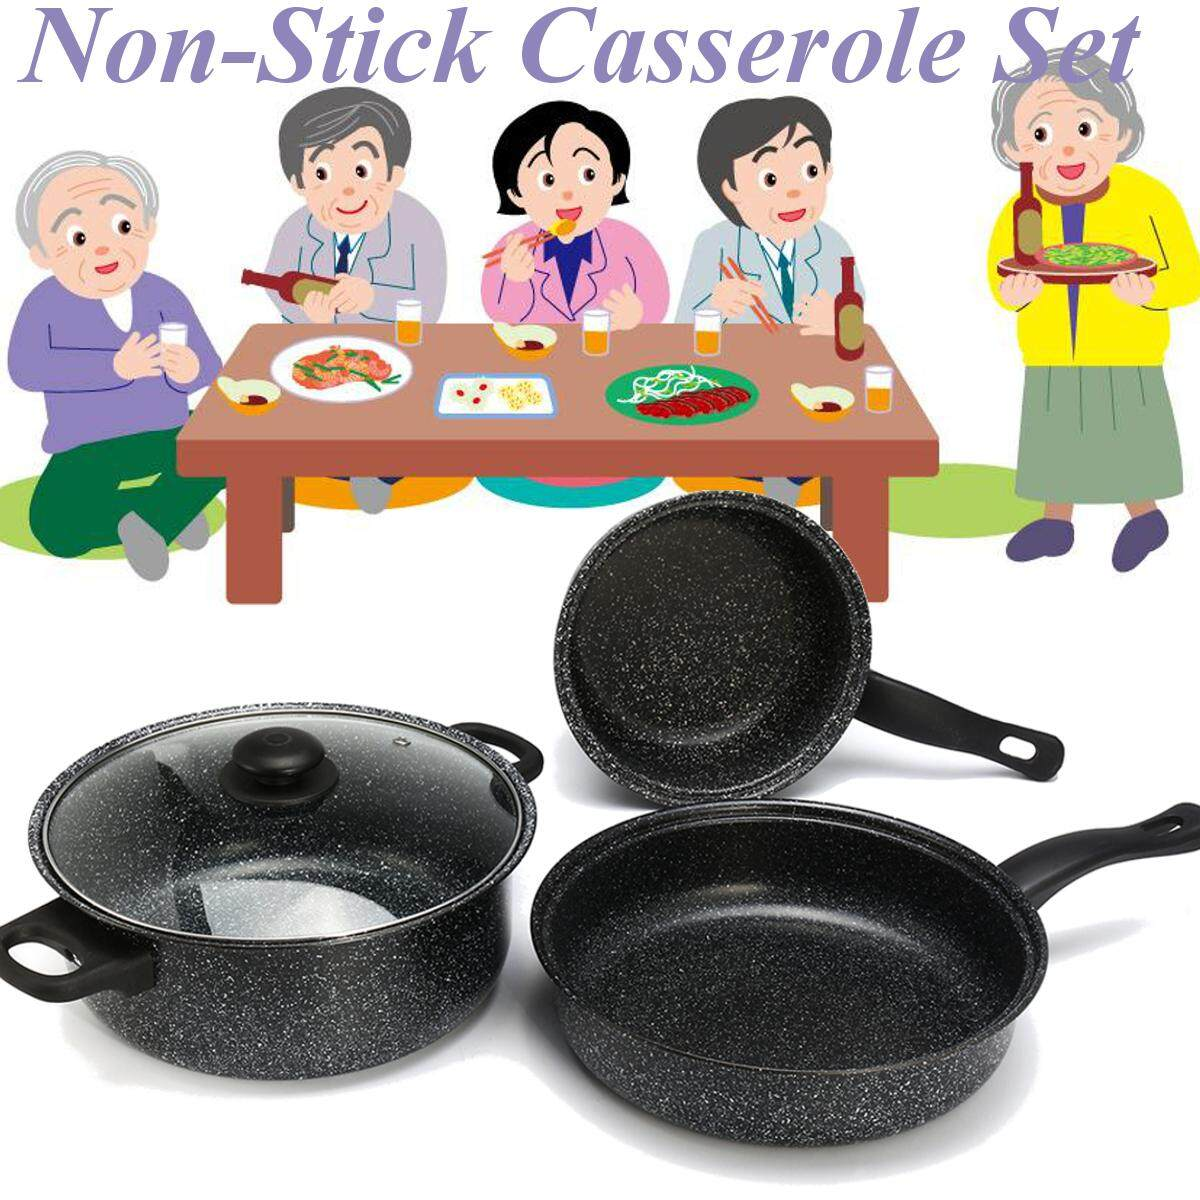 Non-Stick Casserole Insulated Saucepan W/ Lid Induction Stock Pot Cookware By Glimmer.